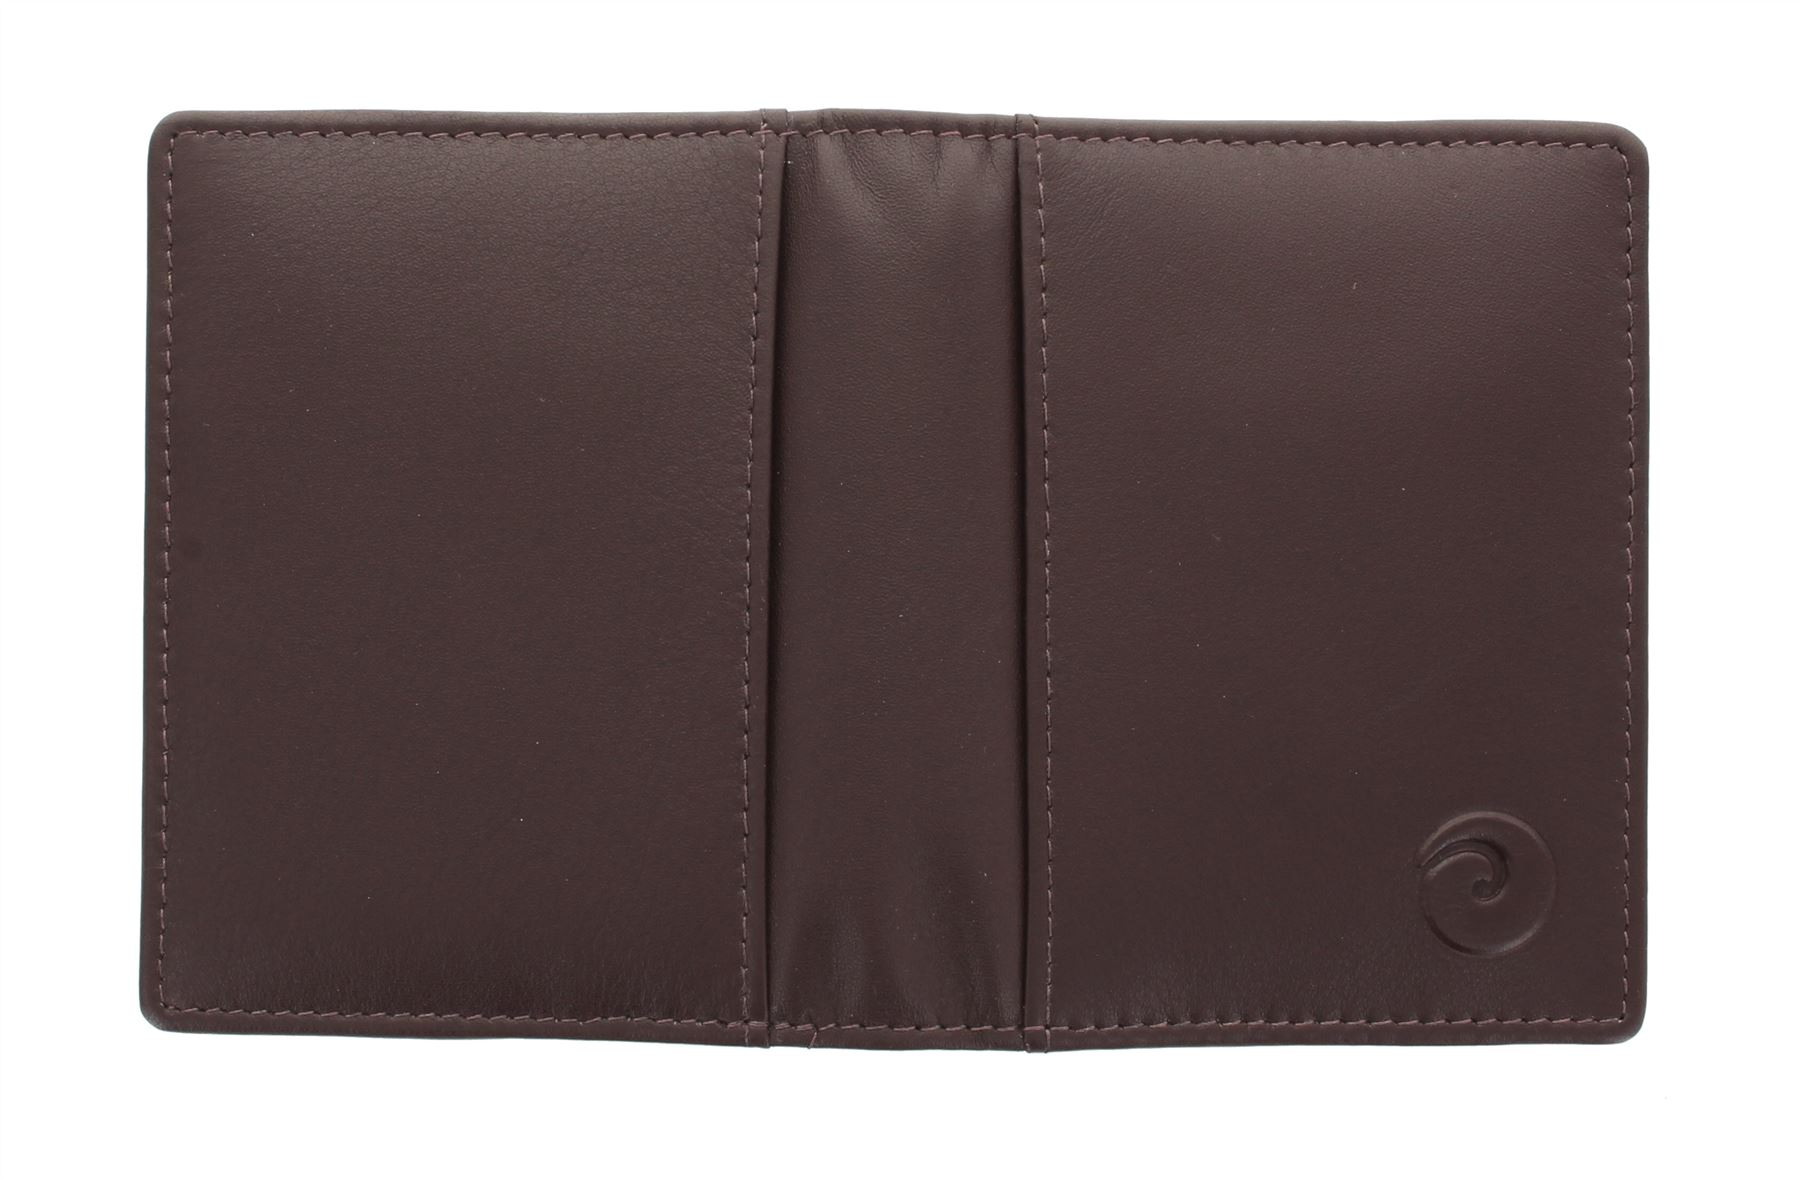 Mala Leather ORIGIN Collection Leather Credit Card Holder RFID Protection 177/_5